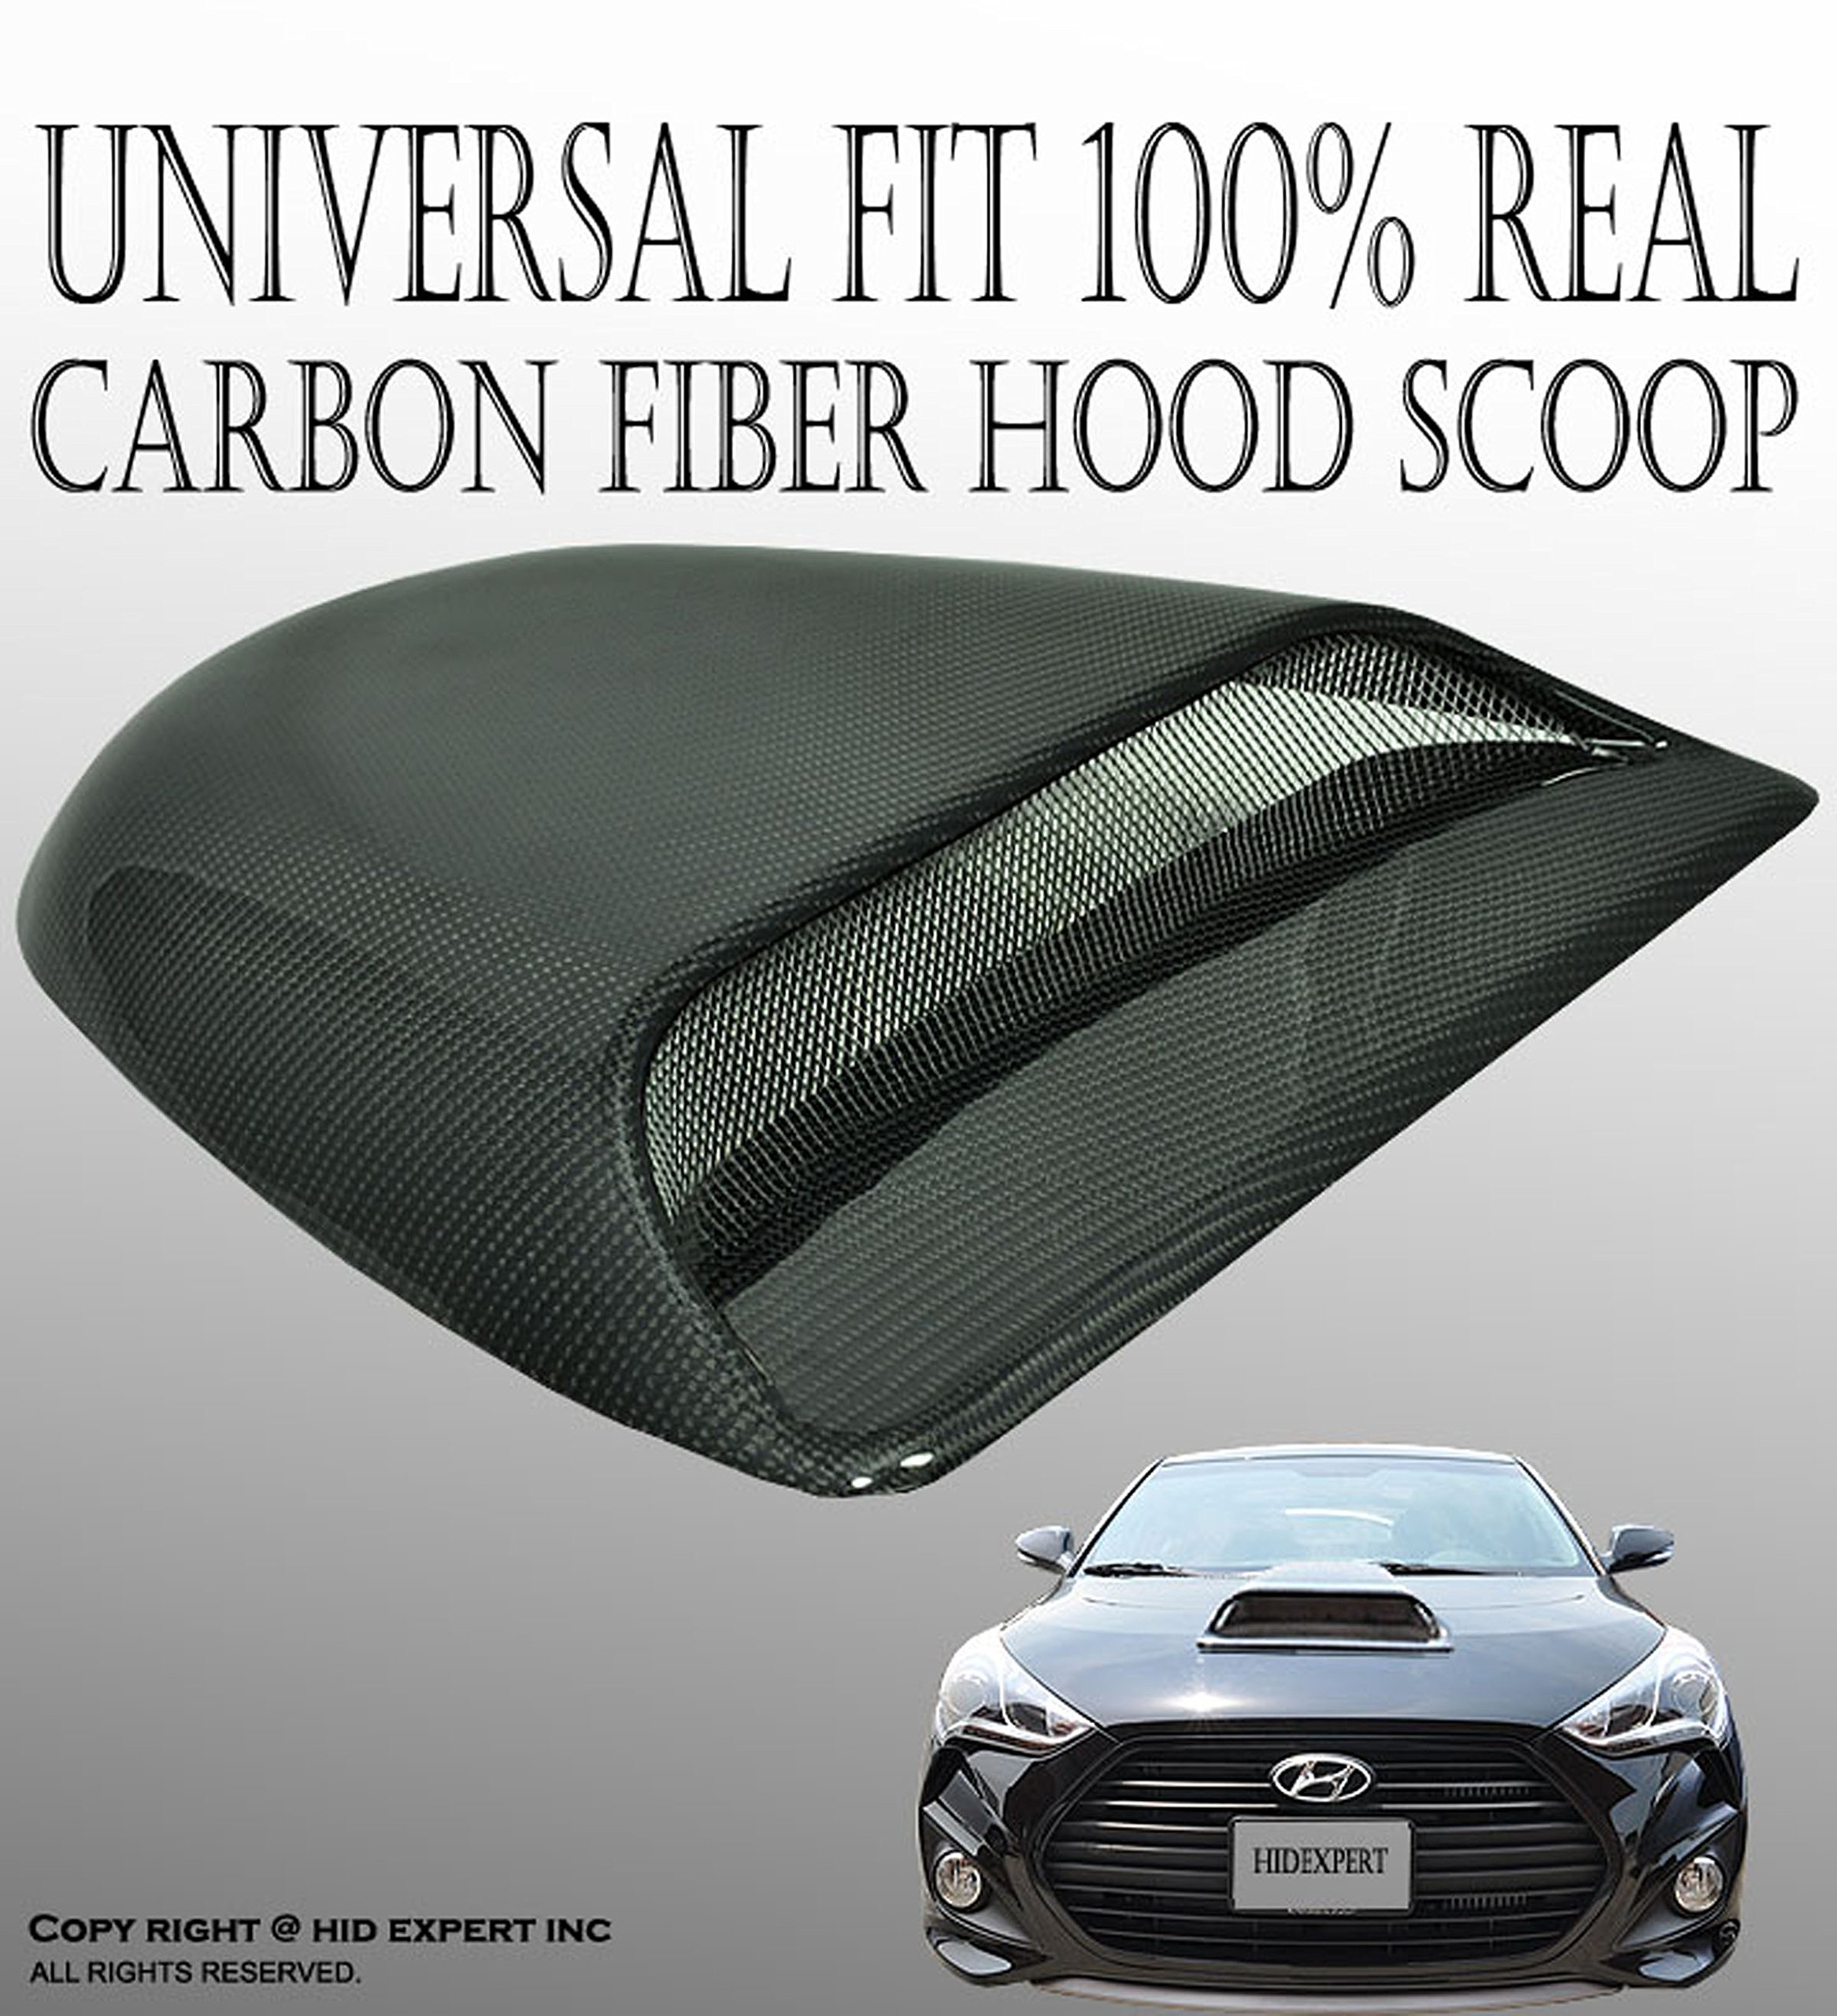 JDM 100% Real Carbon Fiber Hood Scoop Universal Fit Cool Style Fast ship by ICBEAMER